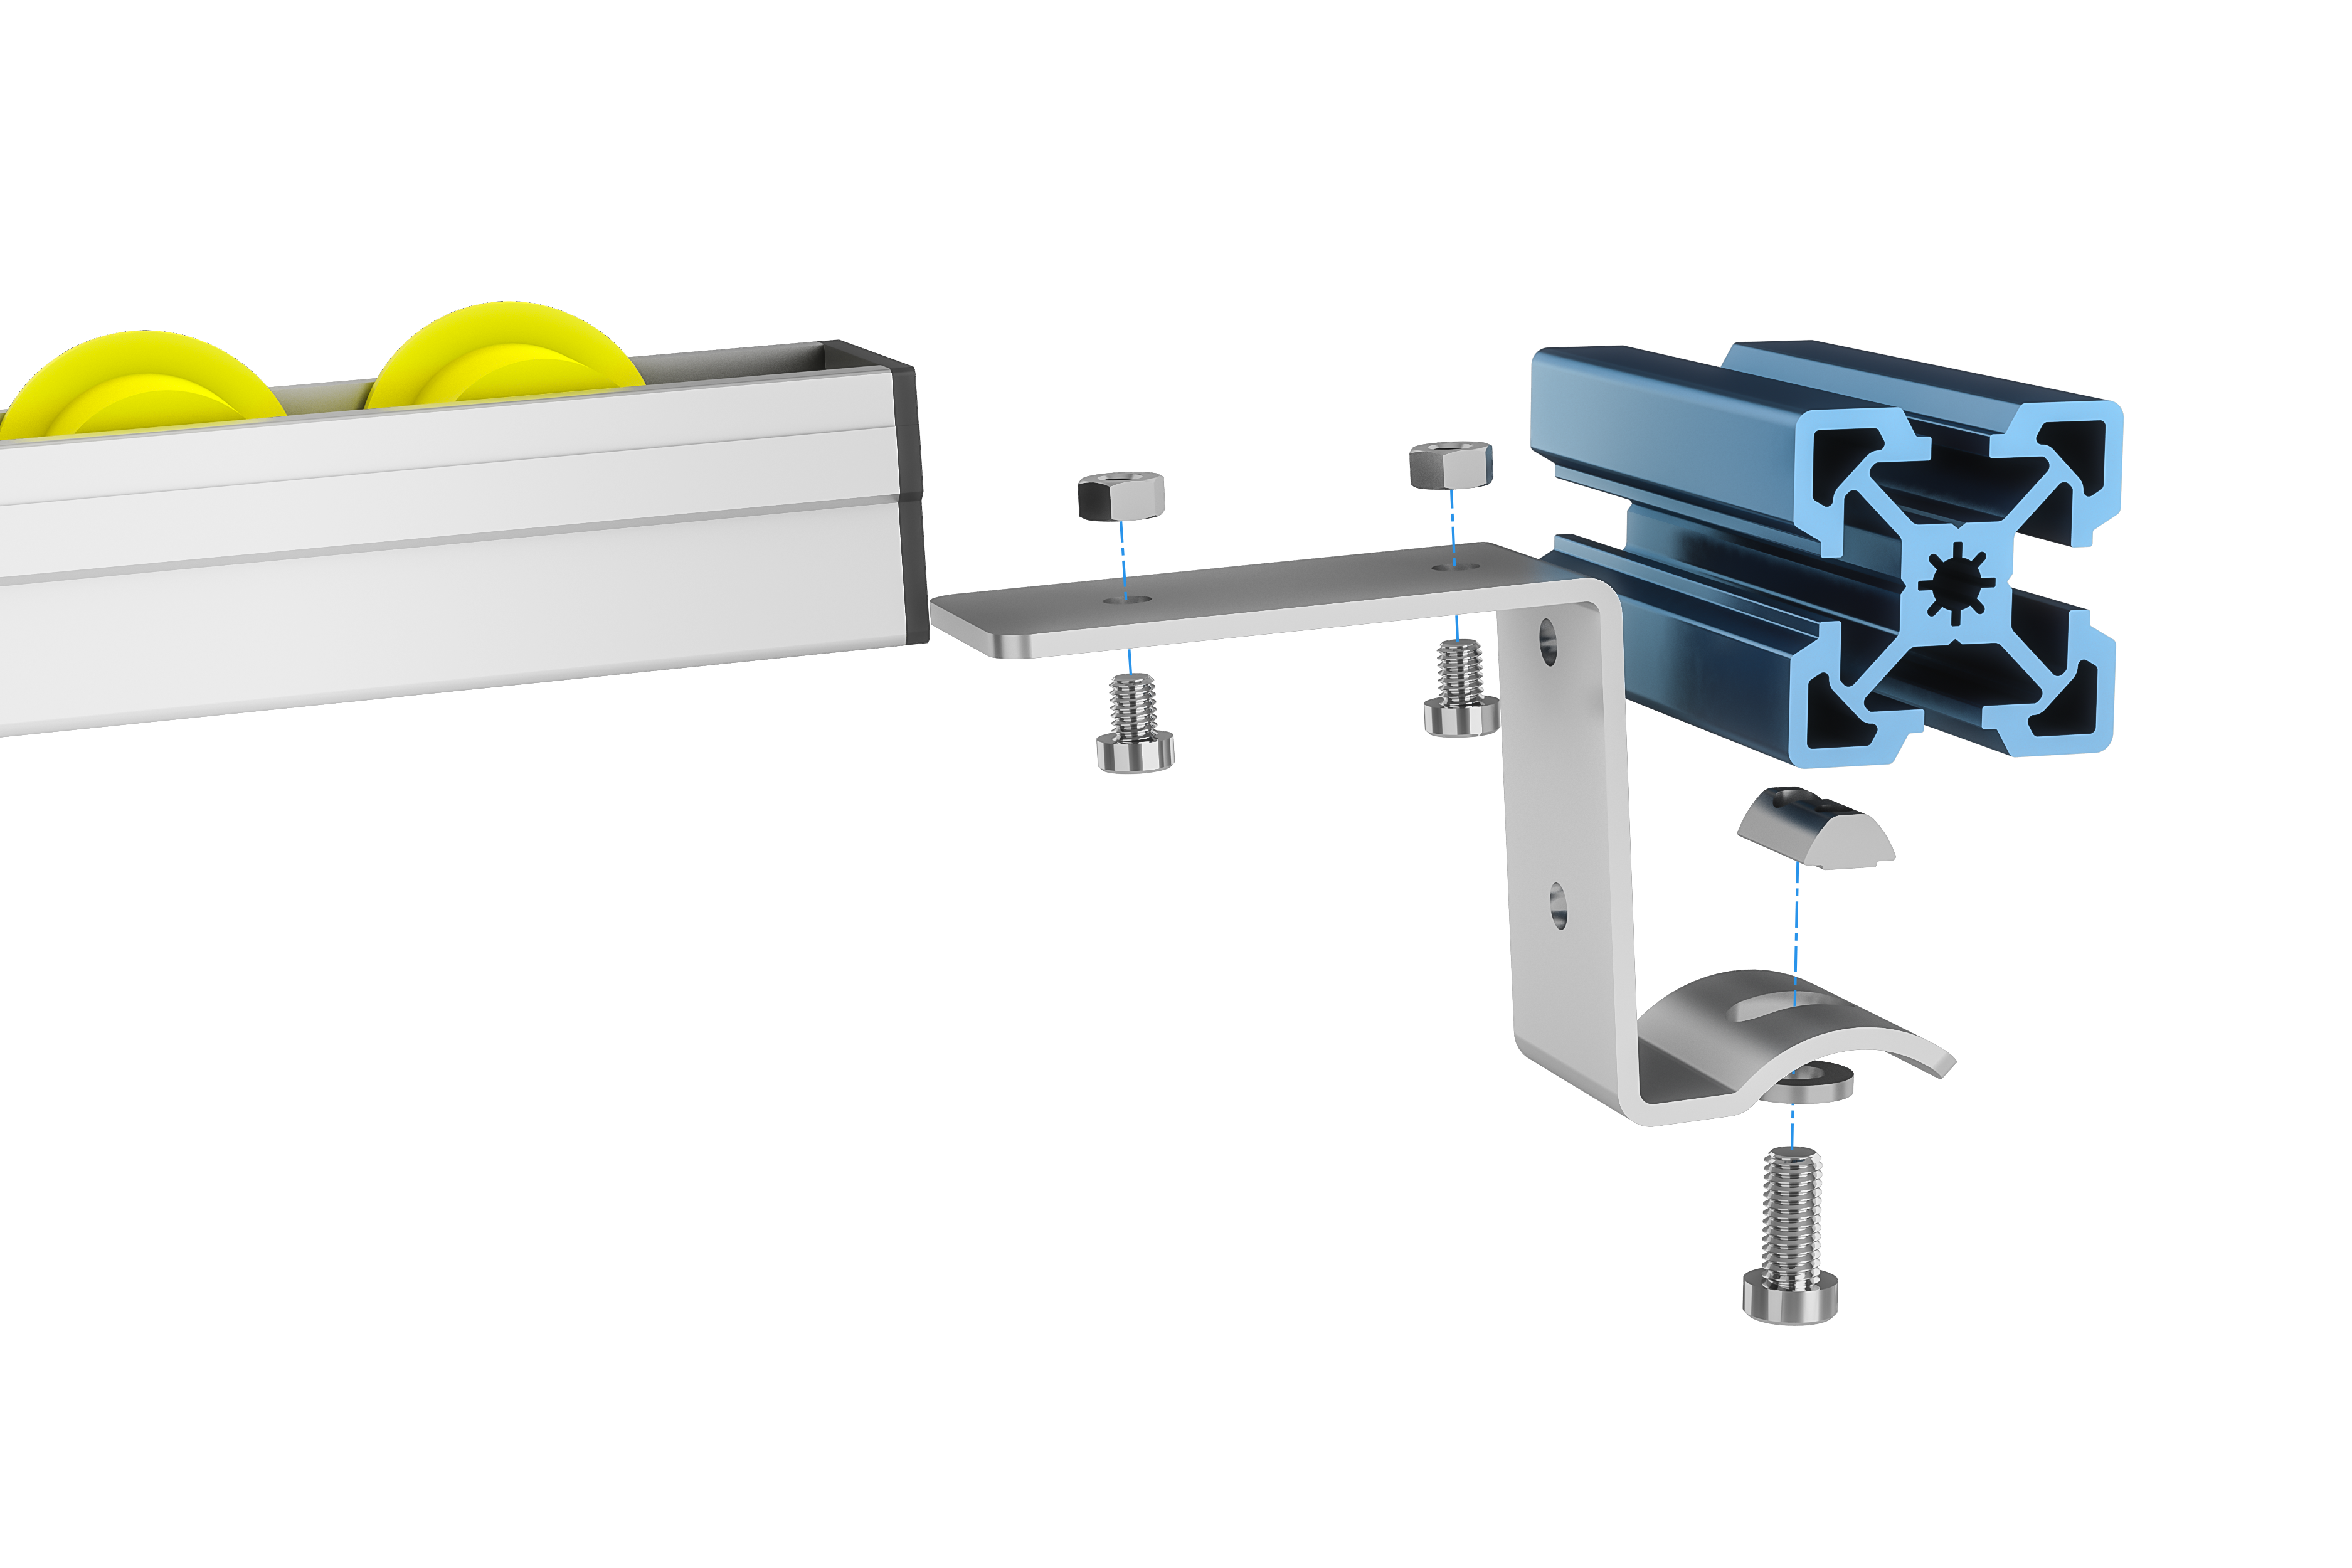 Flow rail exploded view: no end stop configuration.